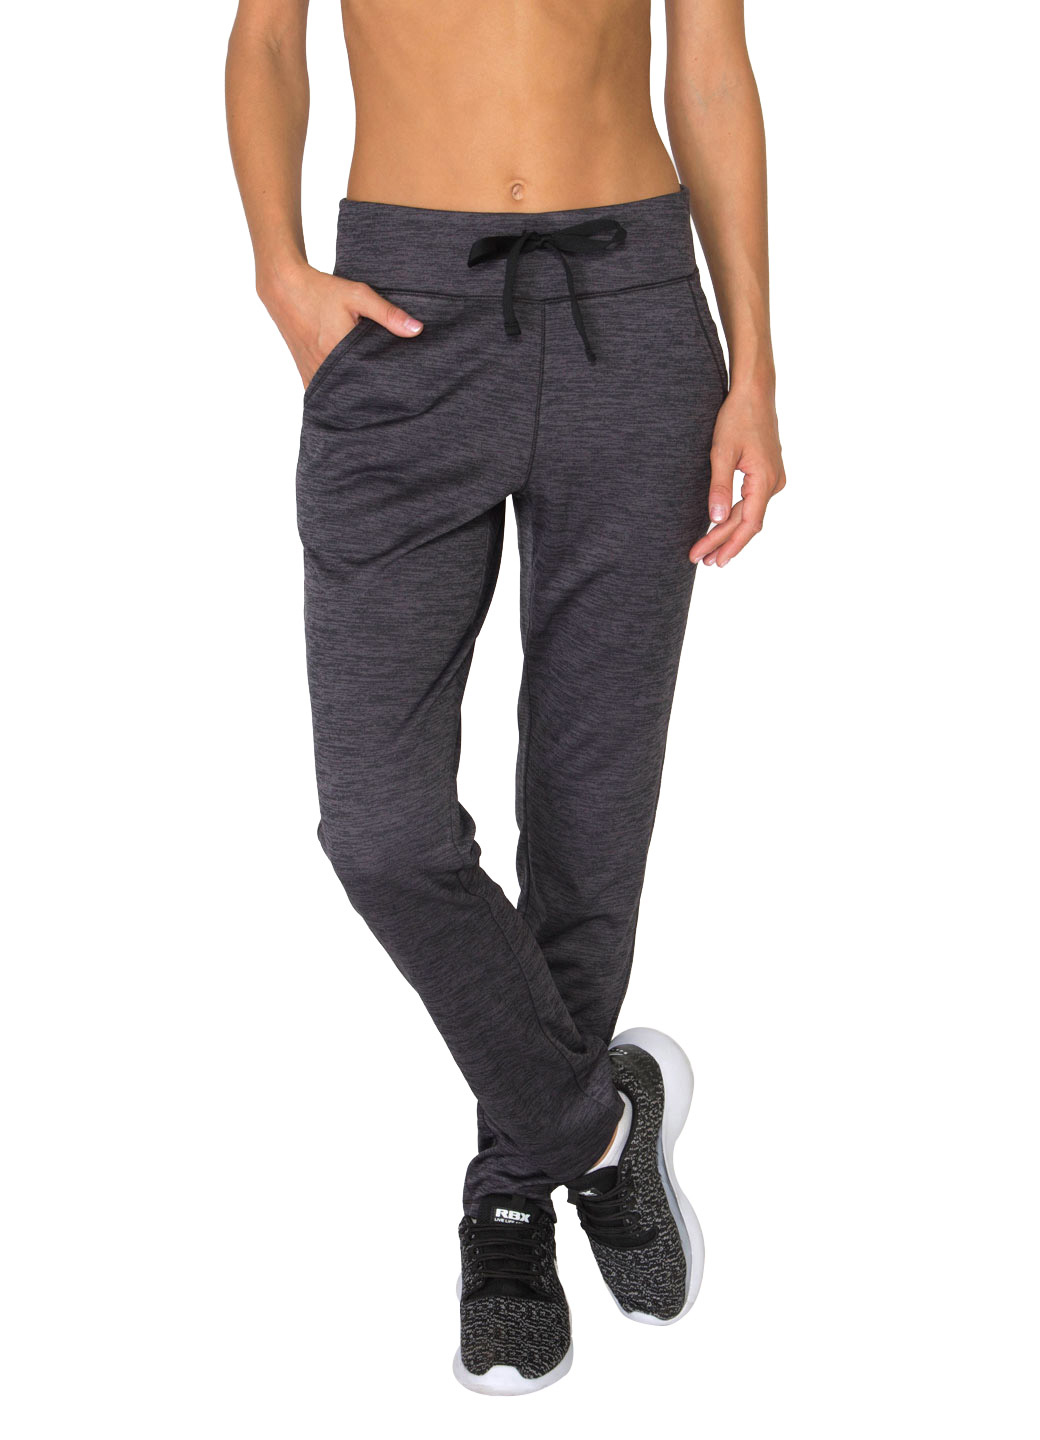 "Women's Active 30"" Inseam Dye Fleece Legging"